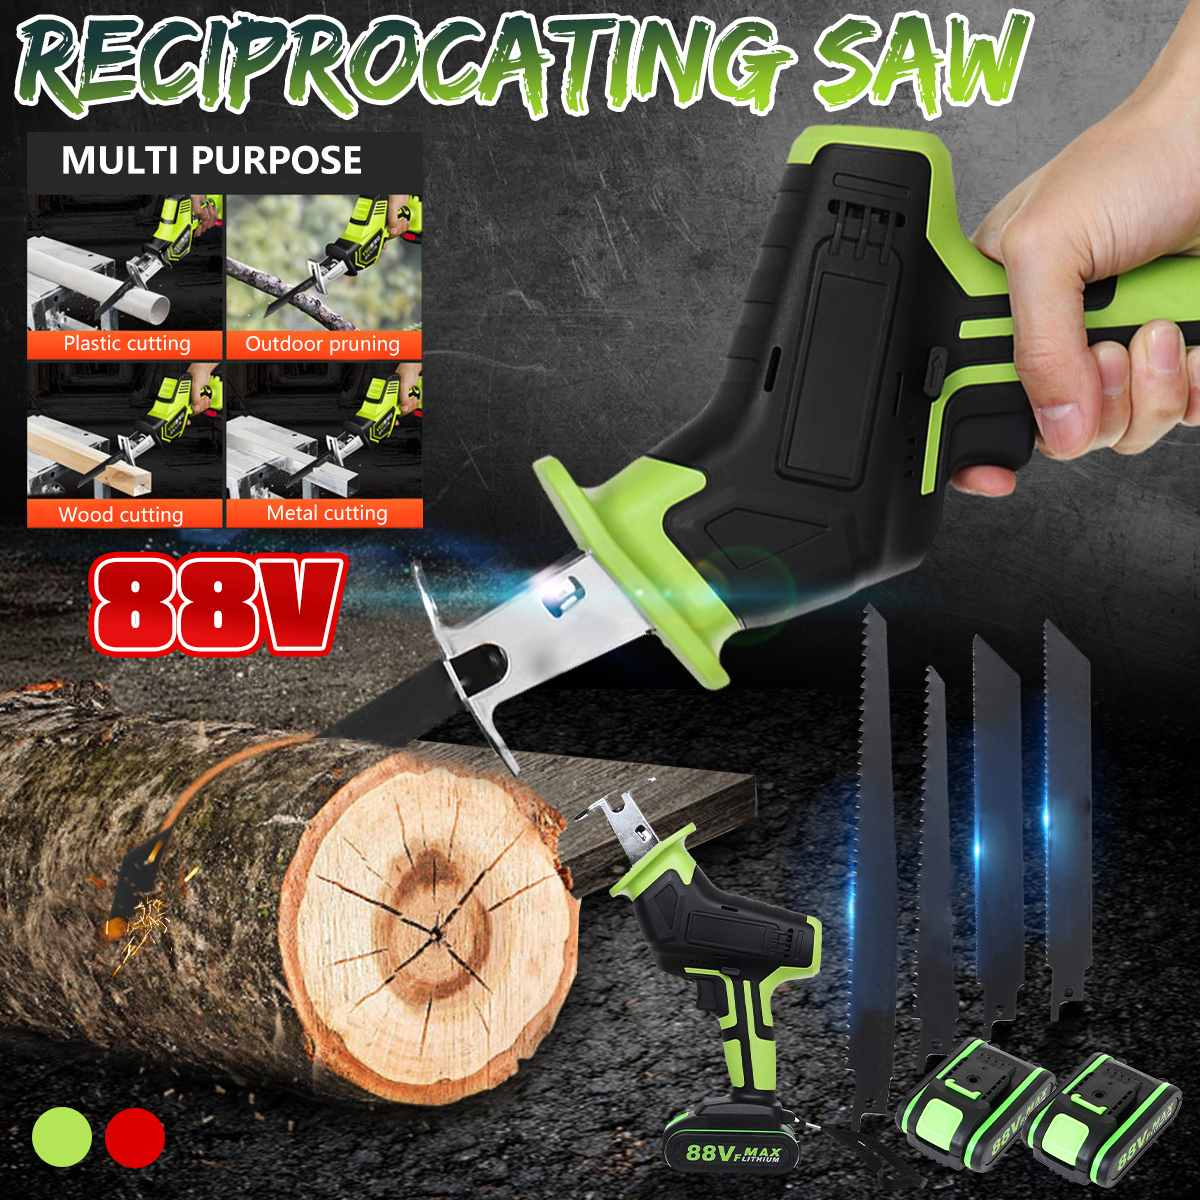 Doersupp 88V Cordless Reciprocating Saw +4 Saw Blades Metal Cutting Wood Tool Portable Woodworking Cutters 220V W/2 Battery